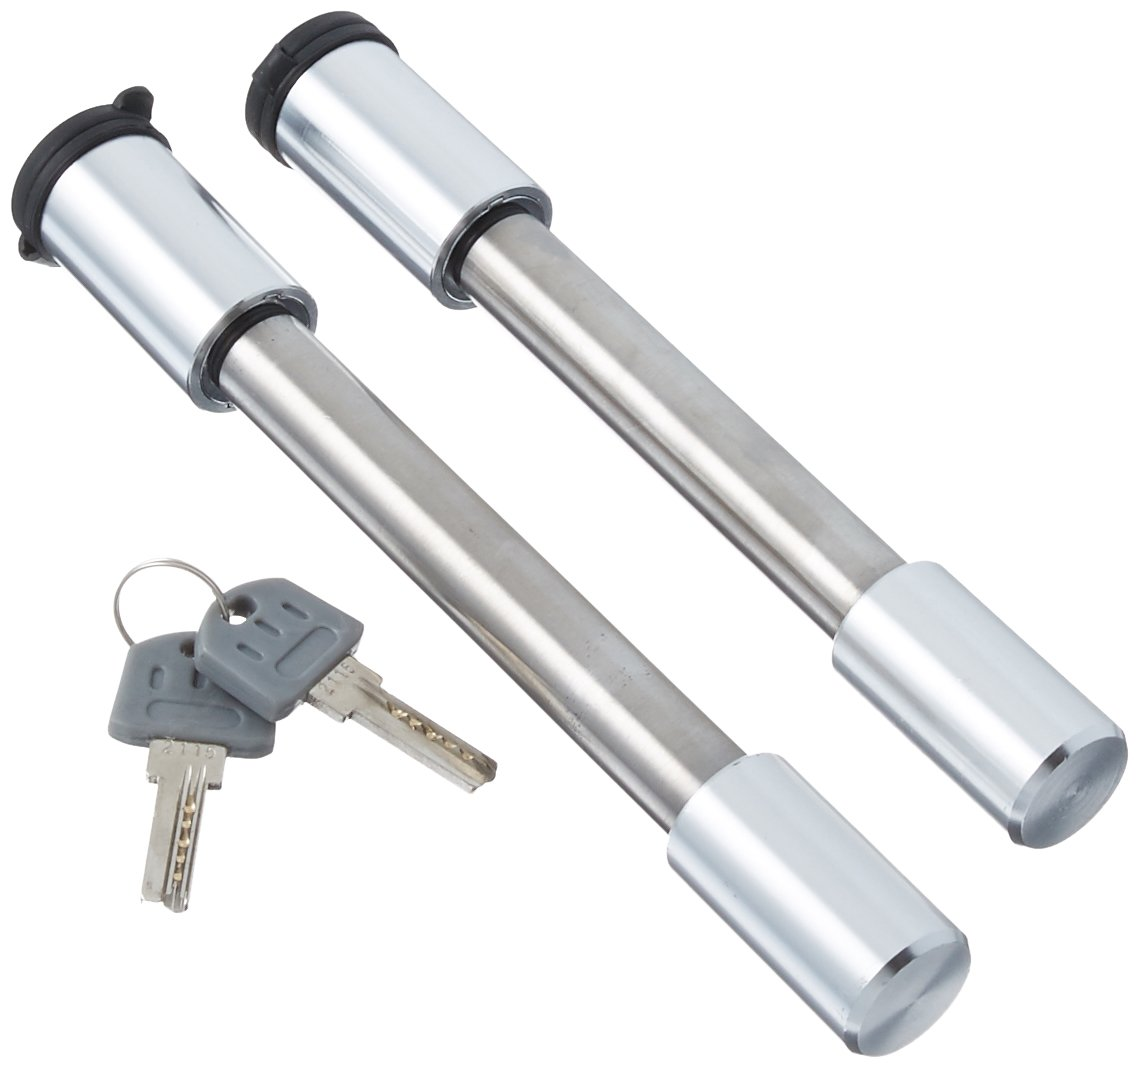 Andersen Hitches Rapid Hitch 3492 Keyed Locking Pin Andersen Manufacturing